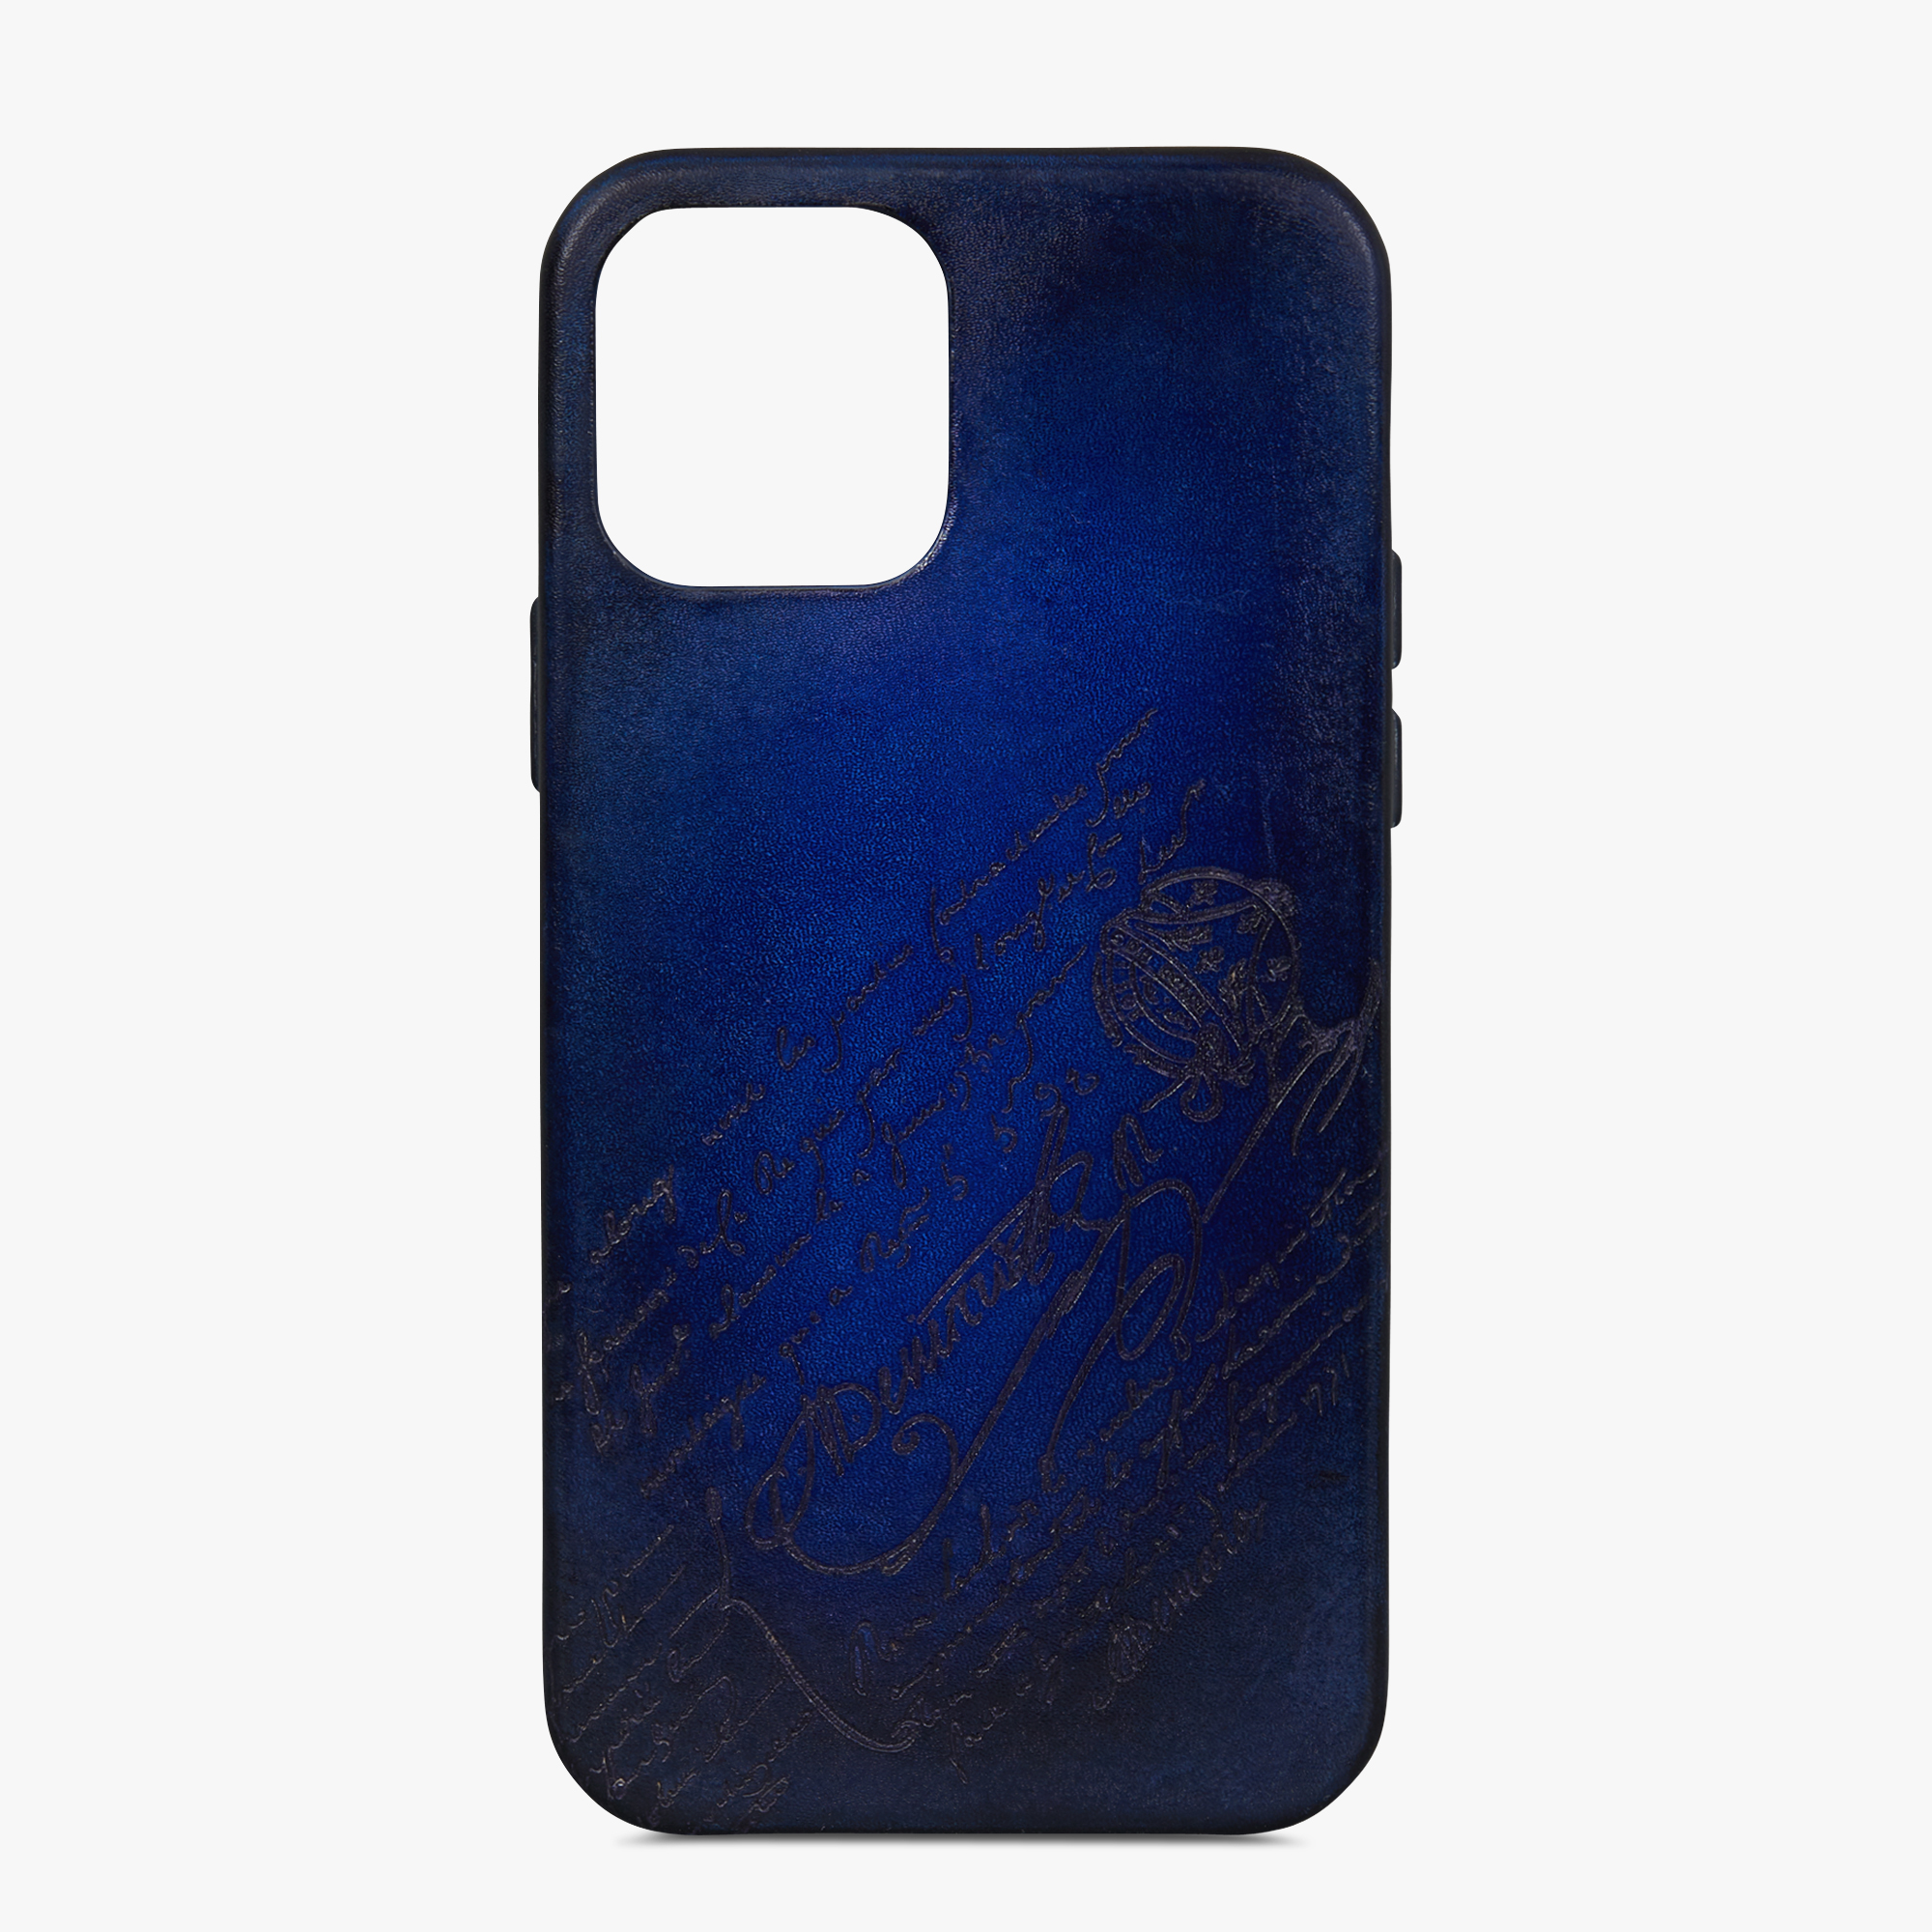 Venezia Iphone 12 Pro Case , UTOPIA BLUE, hi-res